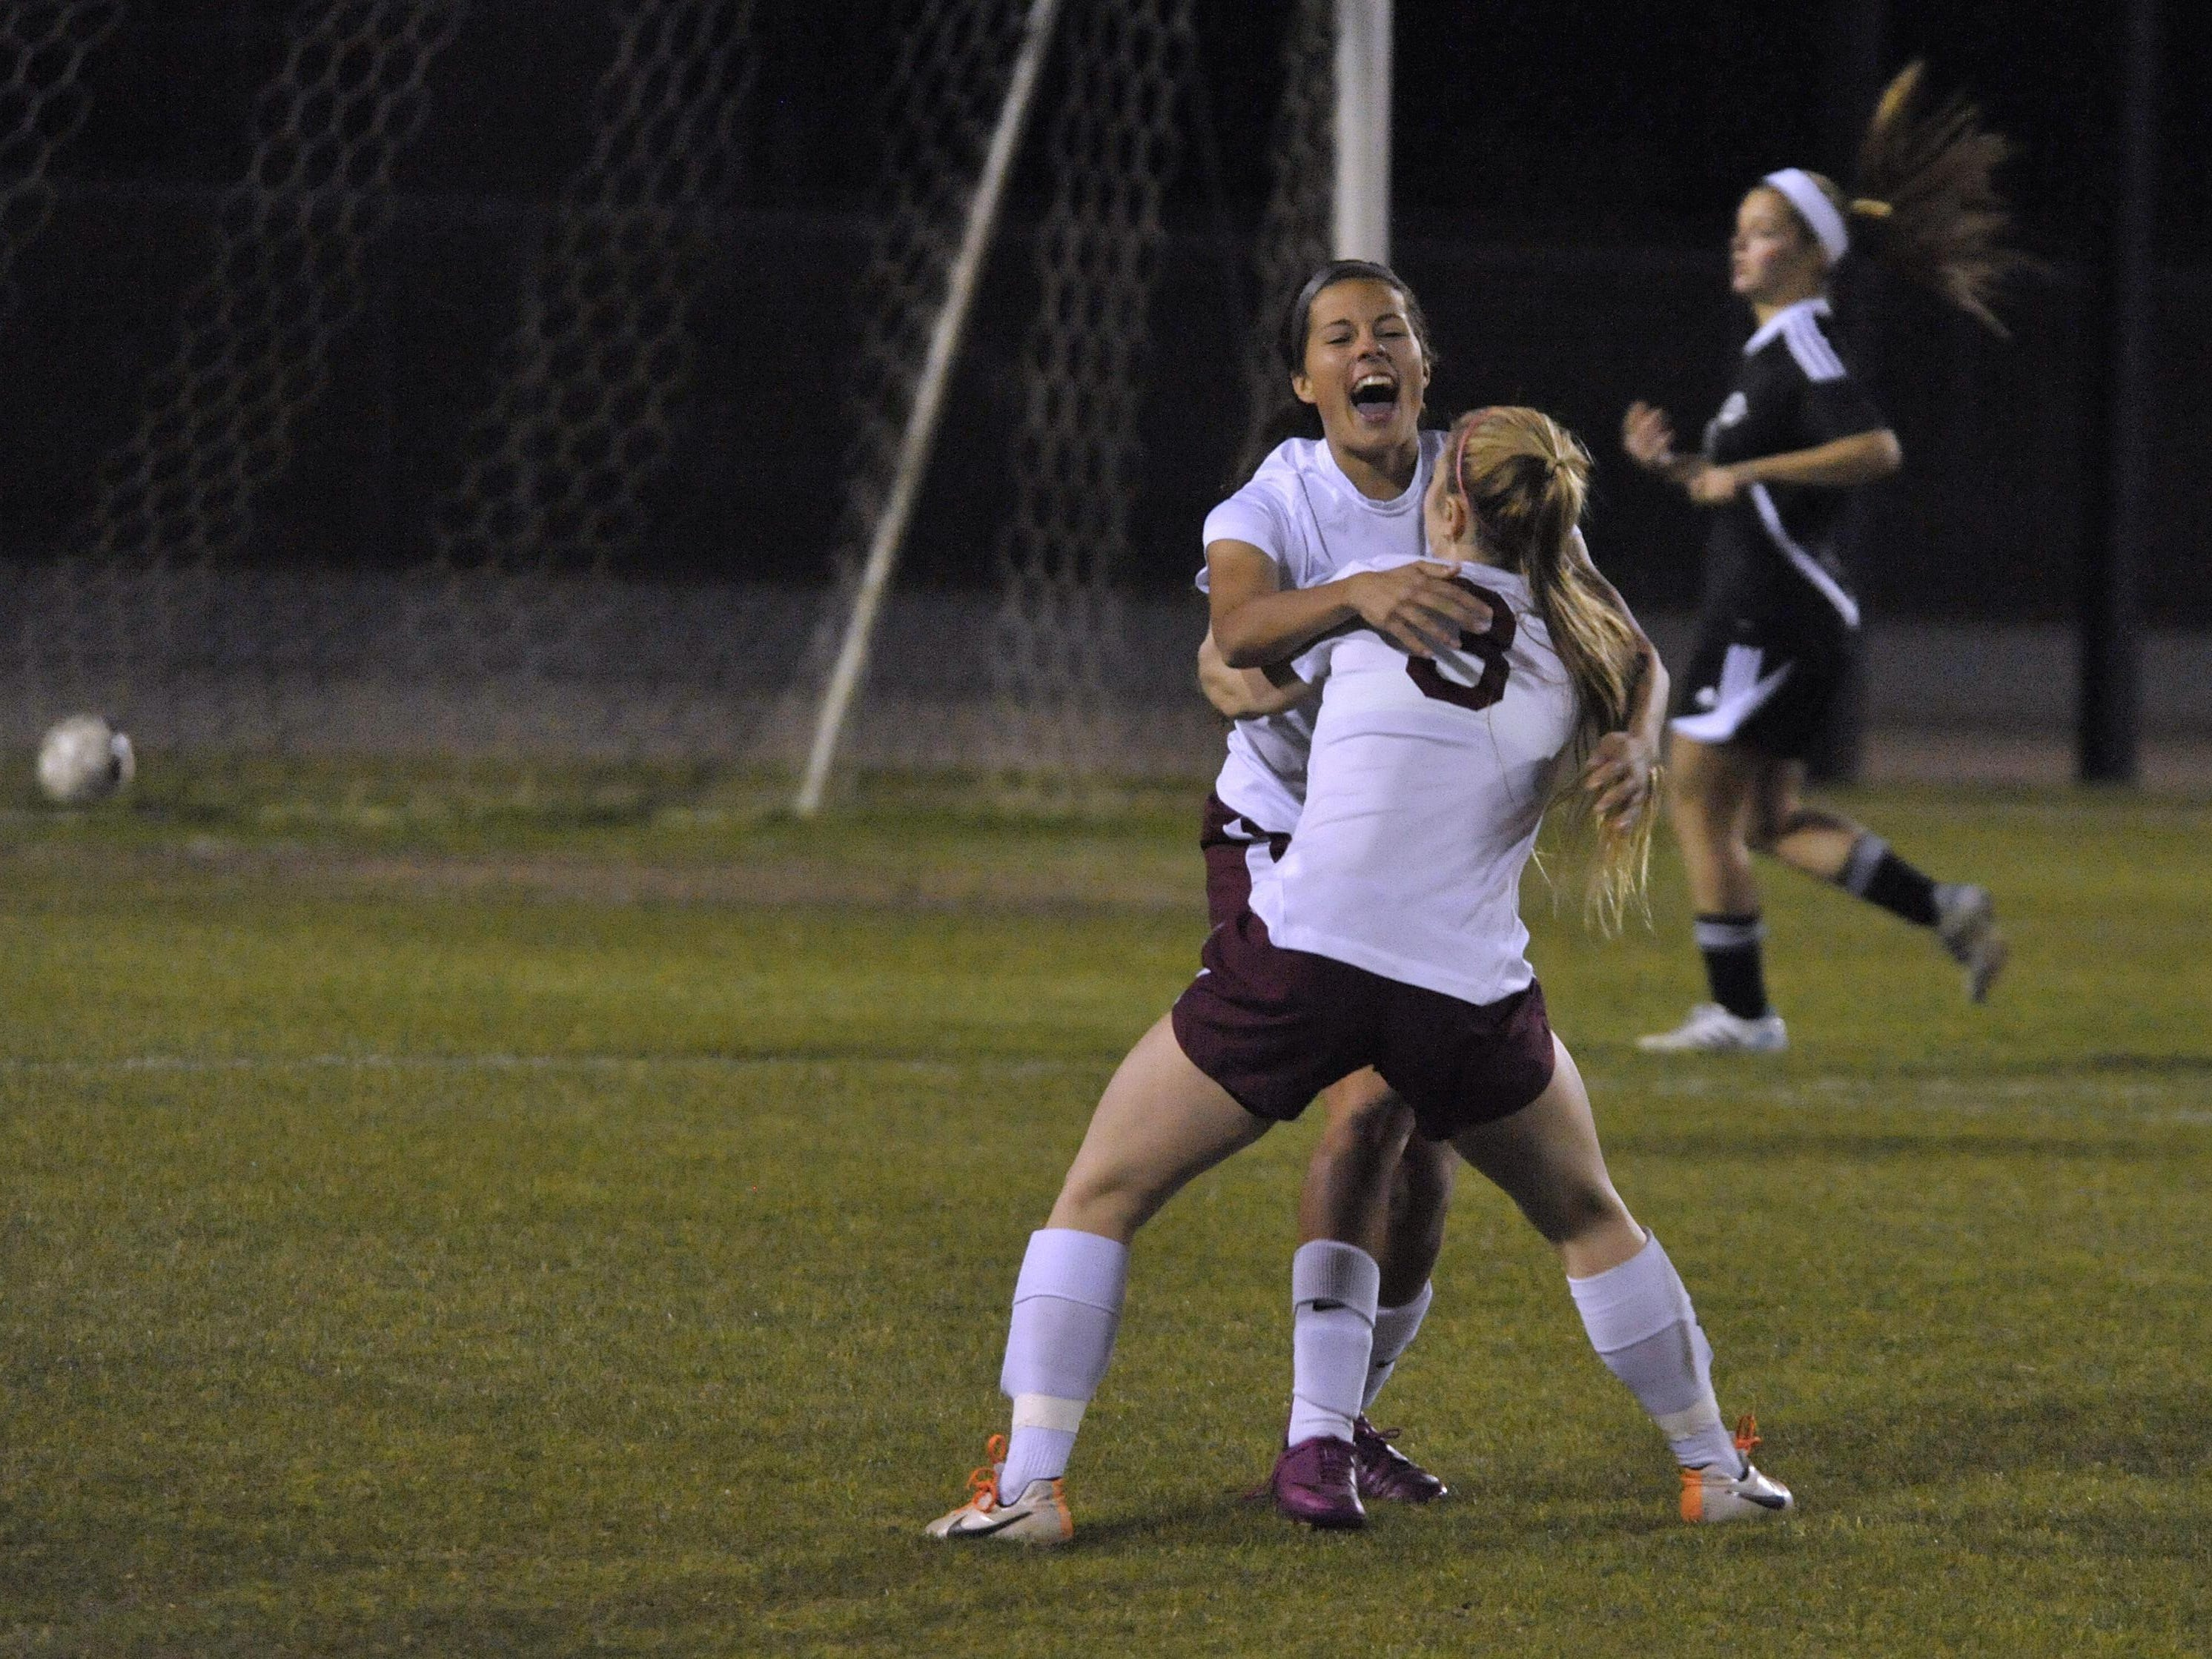 Emily Madril of Navarre celebrates with teammate Kayla Folse, front, after Madril scored the first goal against Creekside during their Region 1-4A title game at Navarre in 2015. On Tuesday, Madril was named Class 4A state player of the year.